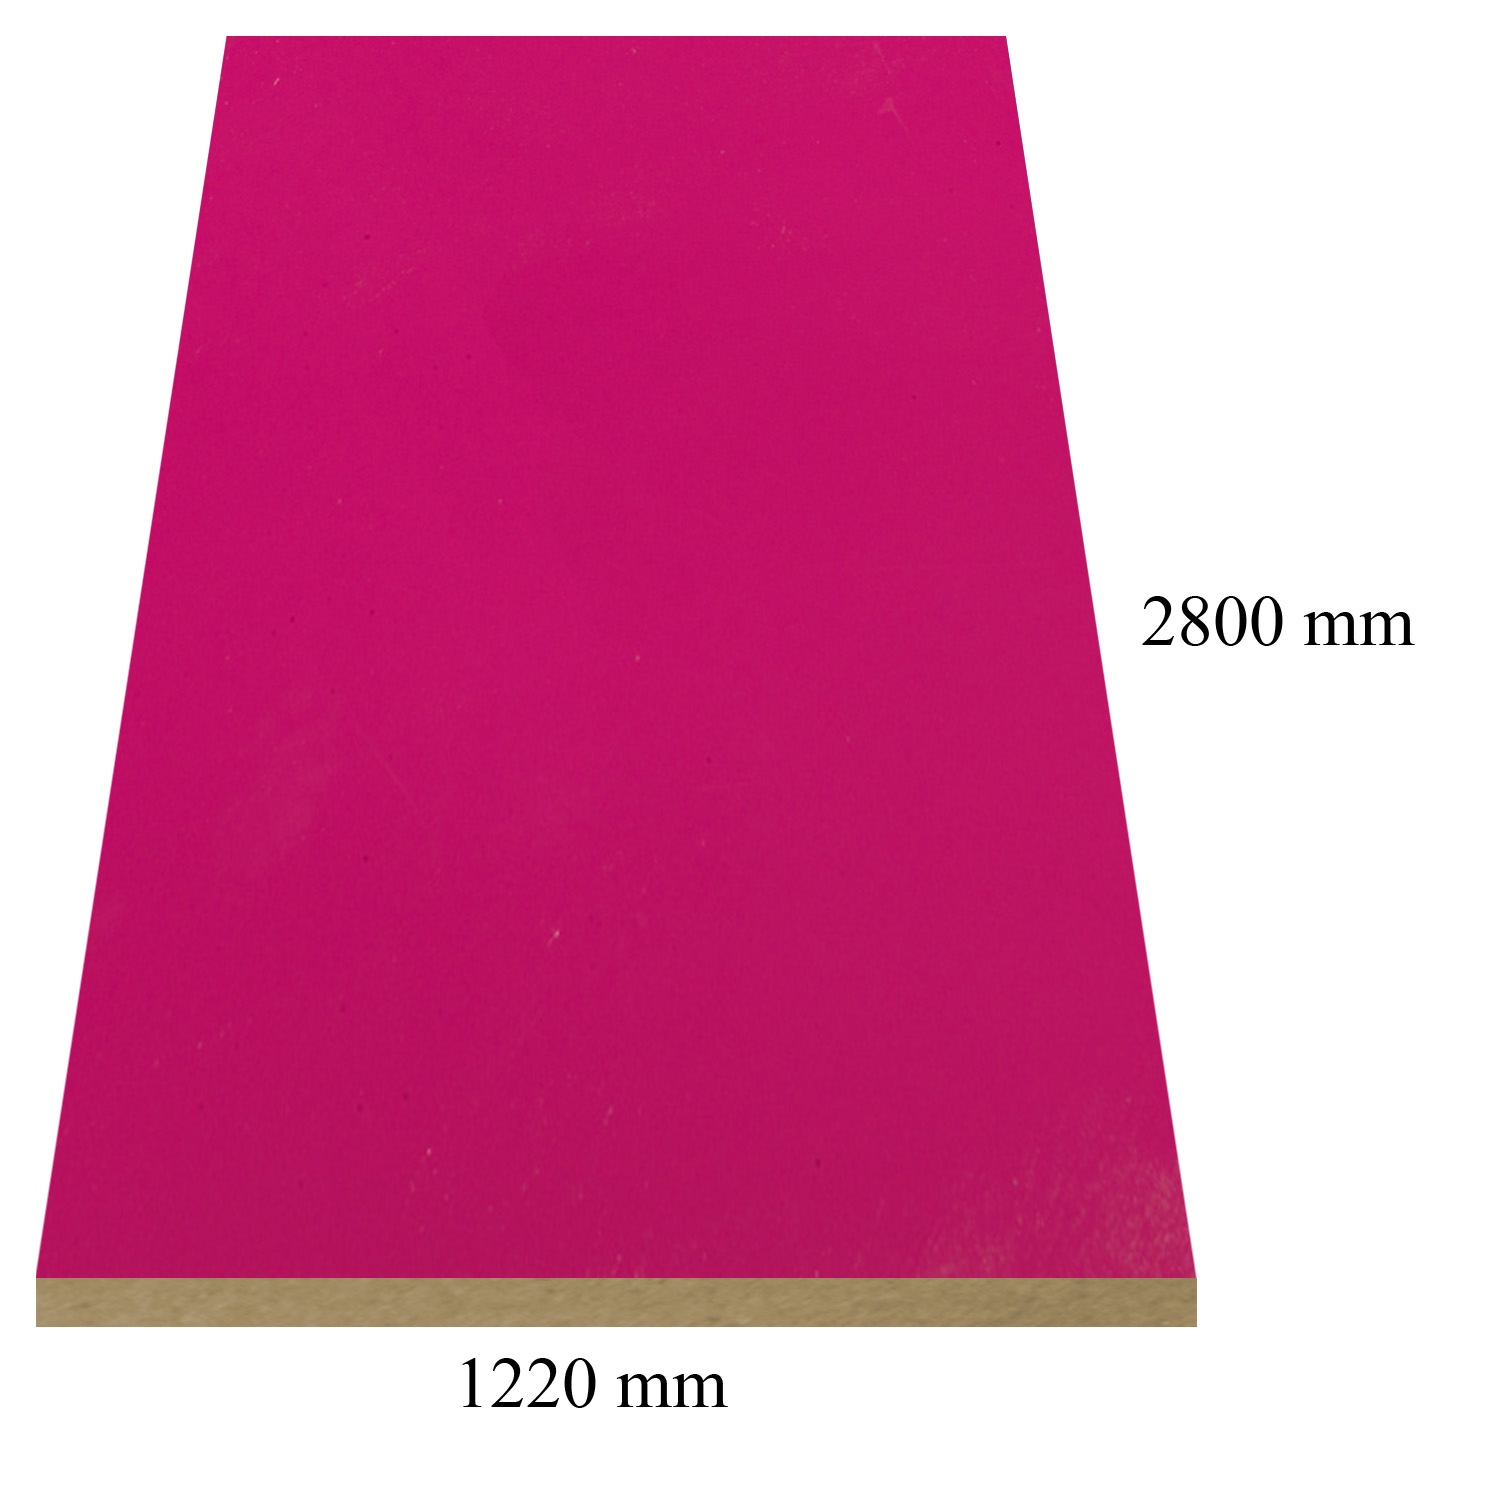 680 Fuxia high gloss - PVC coated 18 mm MDF